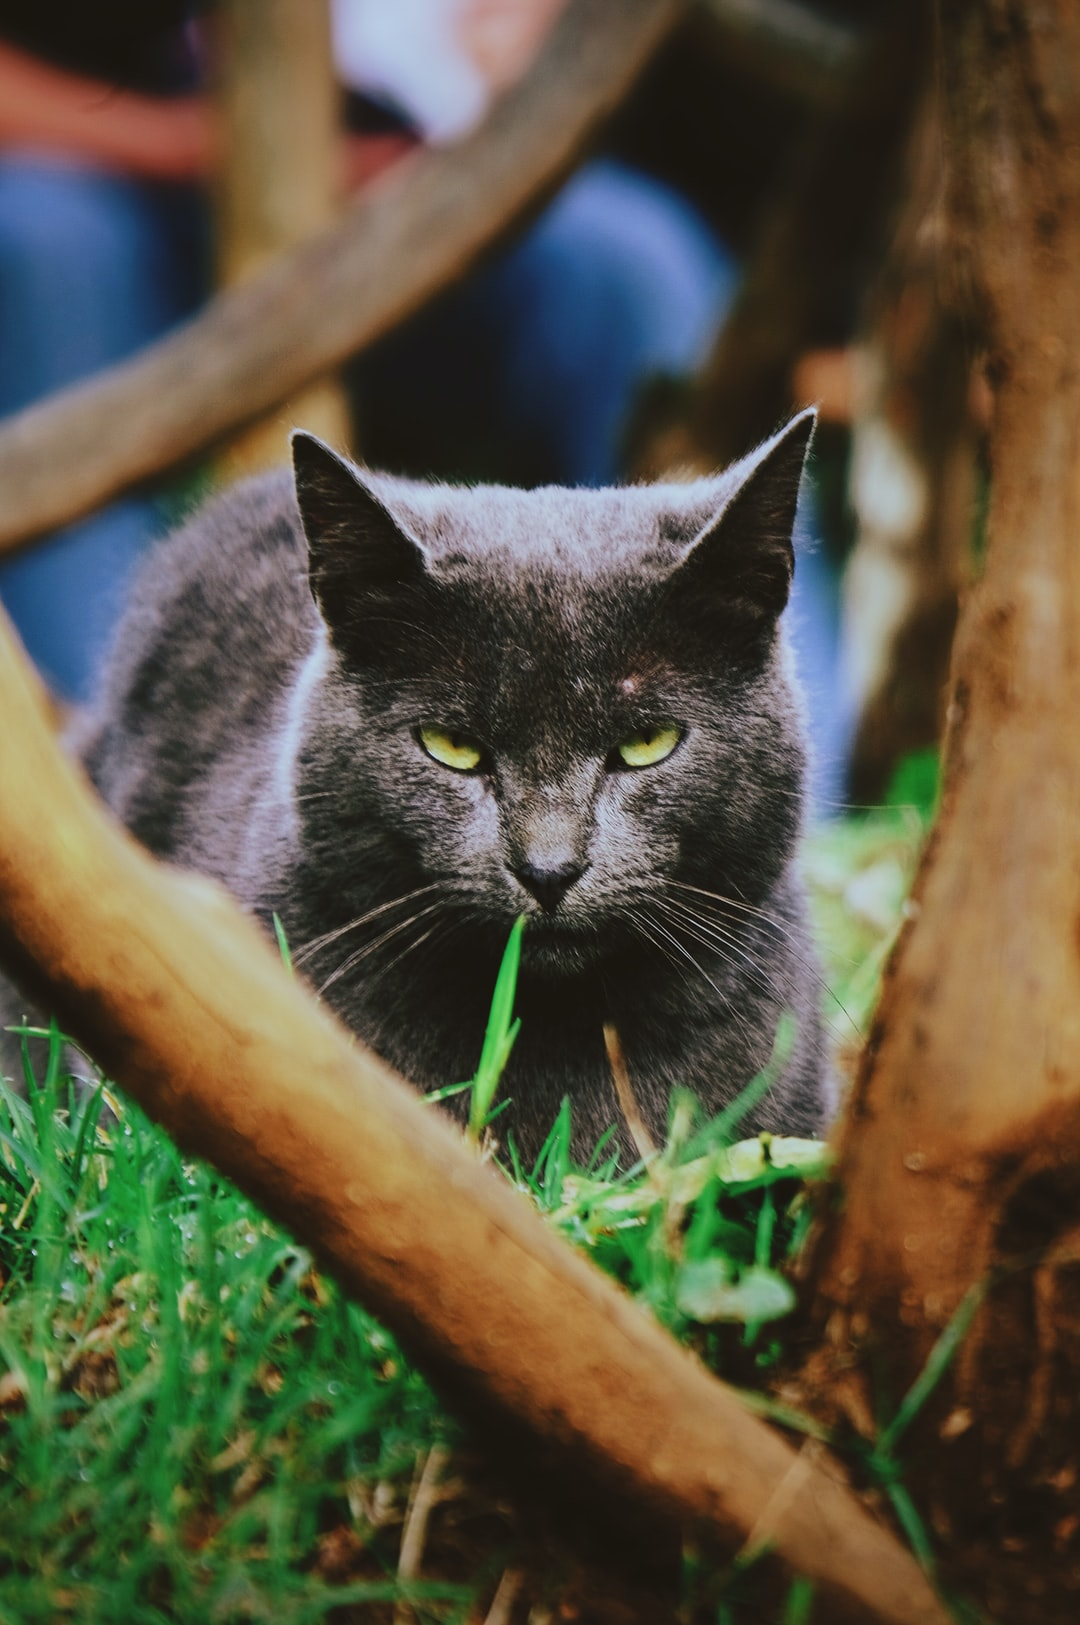 Walking the Levadas of Madeira and stumbled upon this cute cat giving me the evil eyes. Whilst smoking a blade of grass it seems.